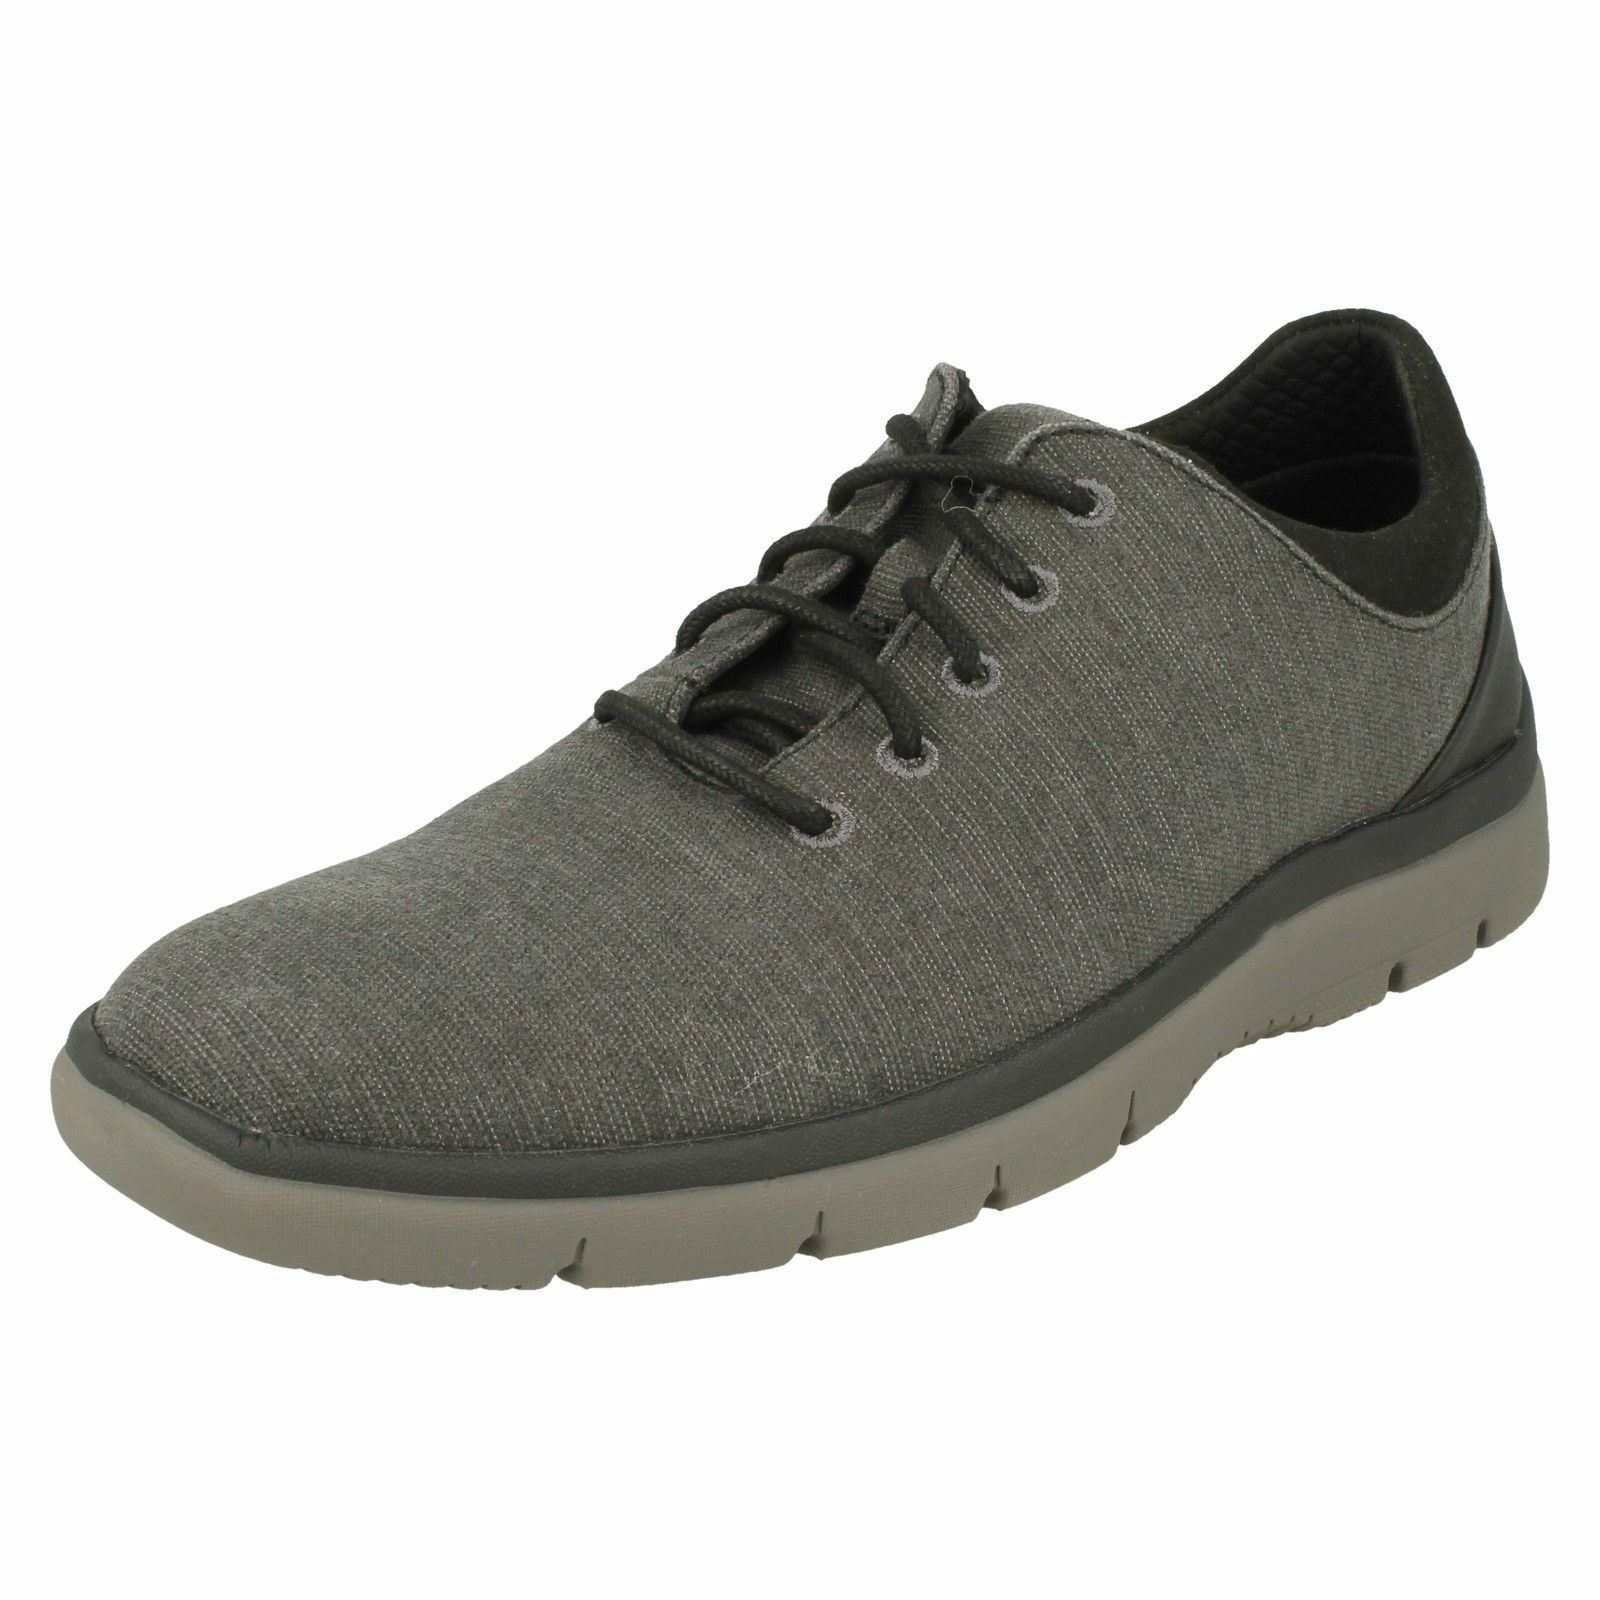 Mens Clarks Stylish Lace-Up Casual Trainers Tunsil Ace    |  | New Style  | Outlet Store Online